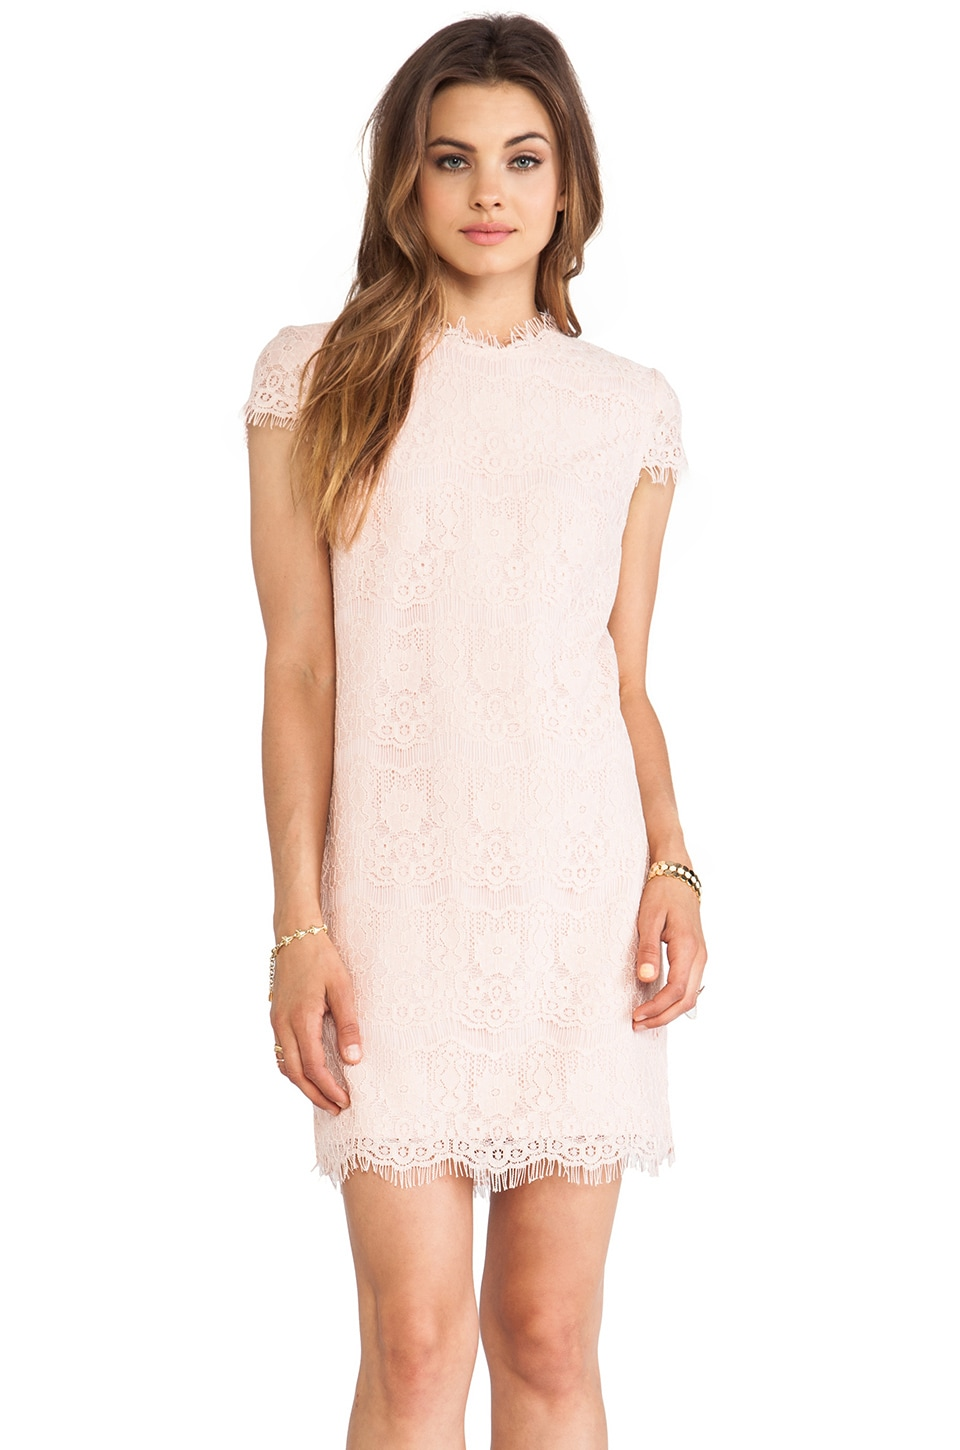 Dolce Vita Ares Dress in Blush